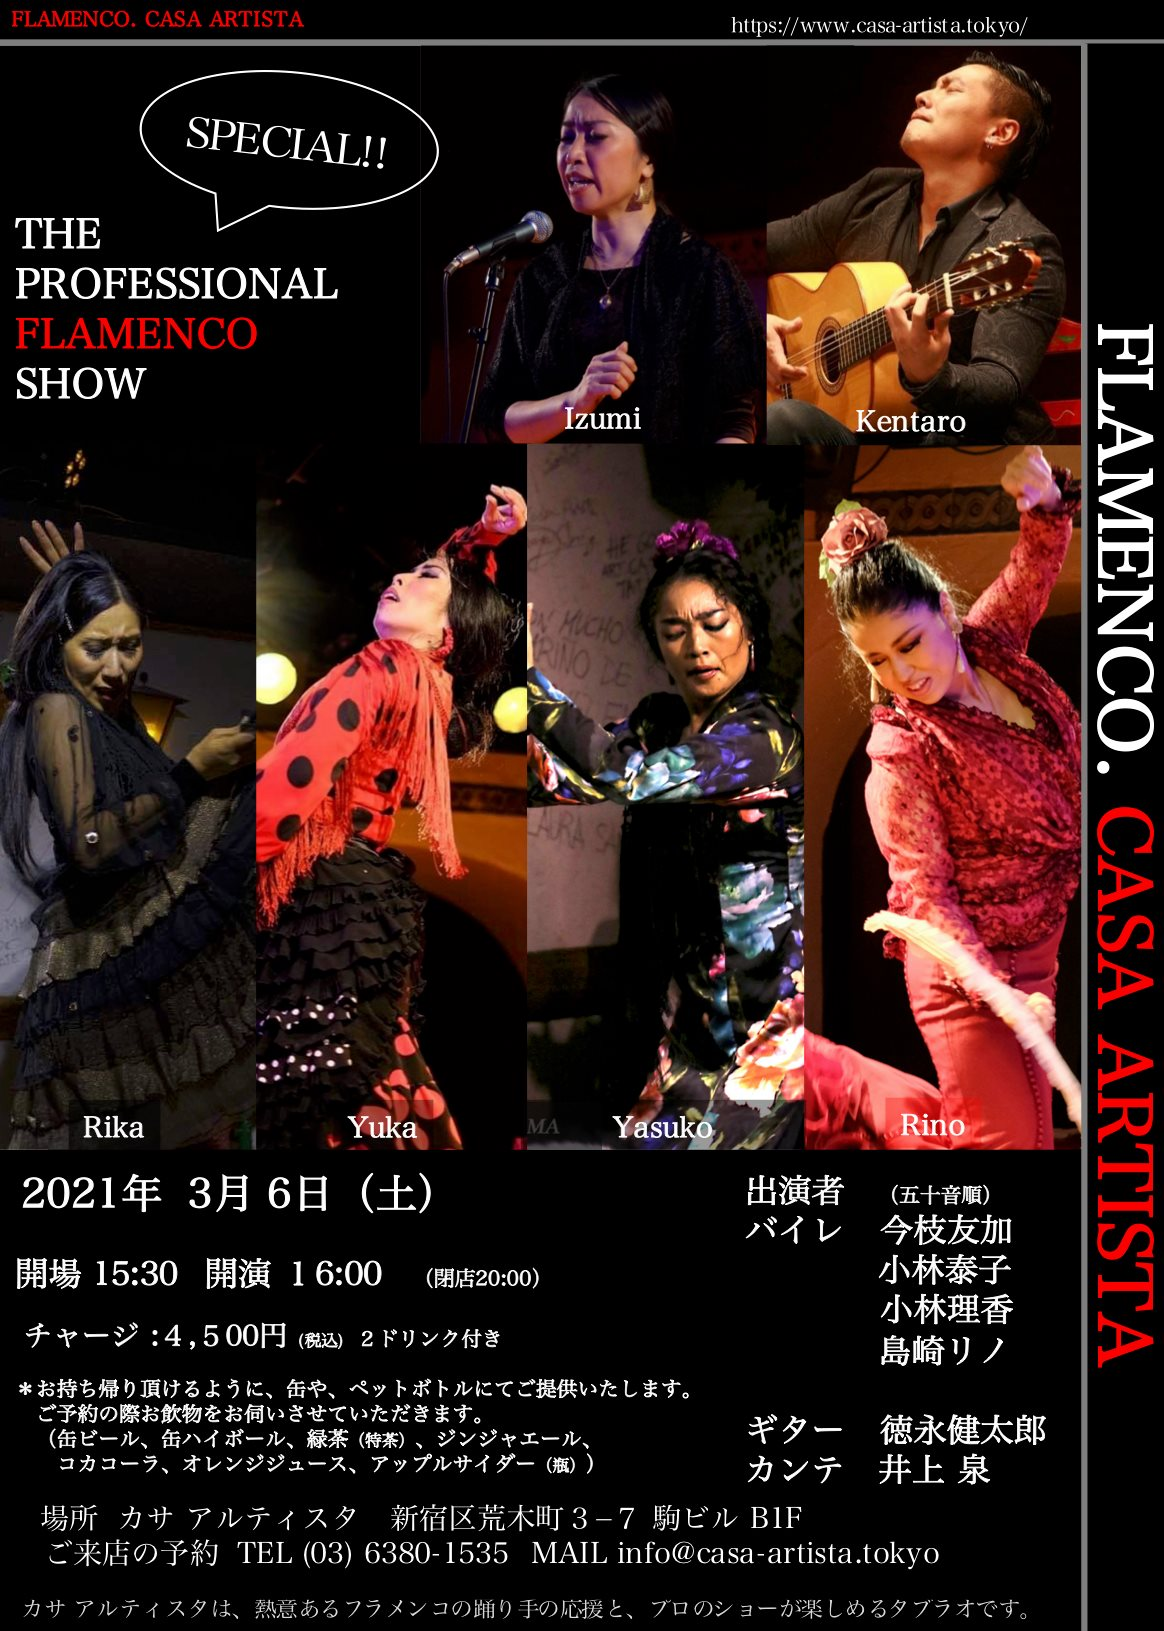 [キャンセル待ち] CASA ARTISTA THE PROFESSIONAL SPECIAL FLAMENCO SHOW @ カサ・アルティスタ